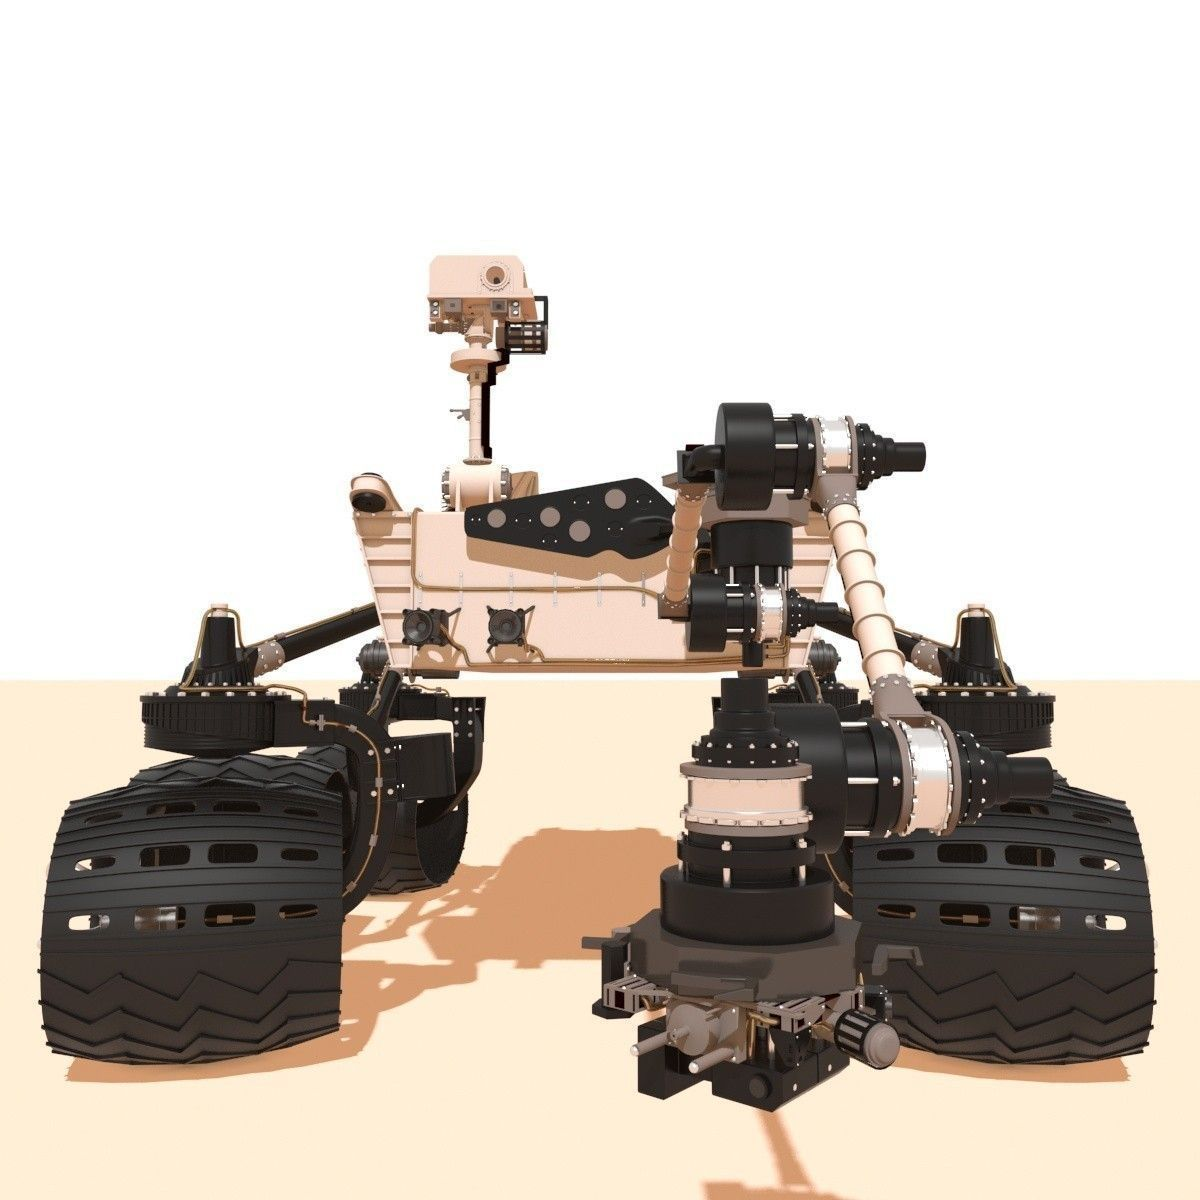 curiosity rover scale model - photo #23